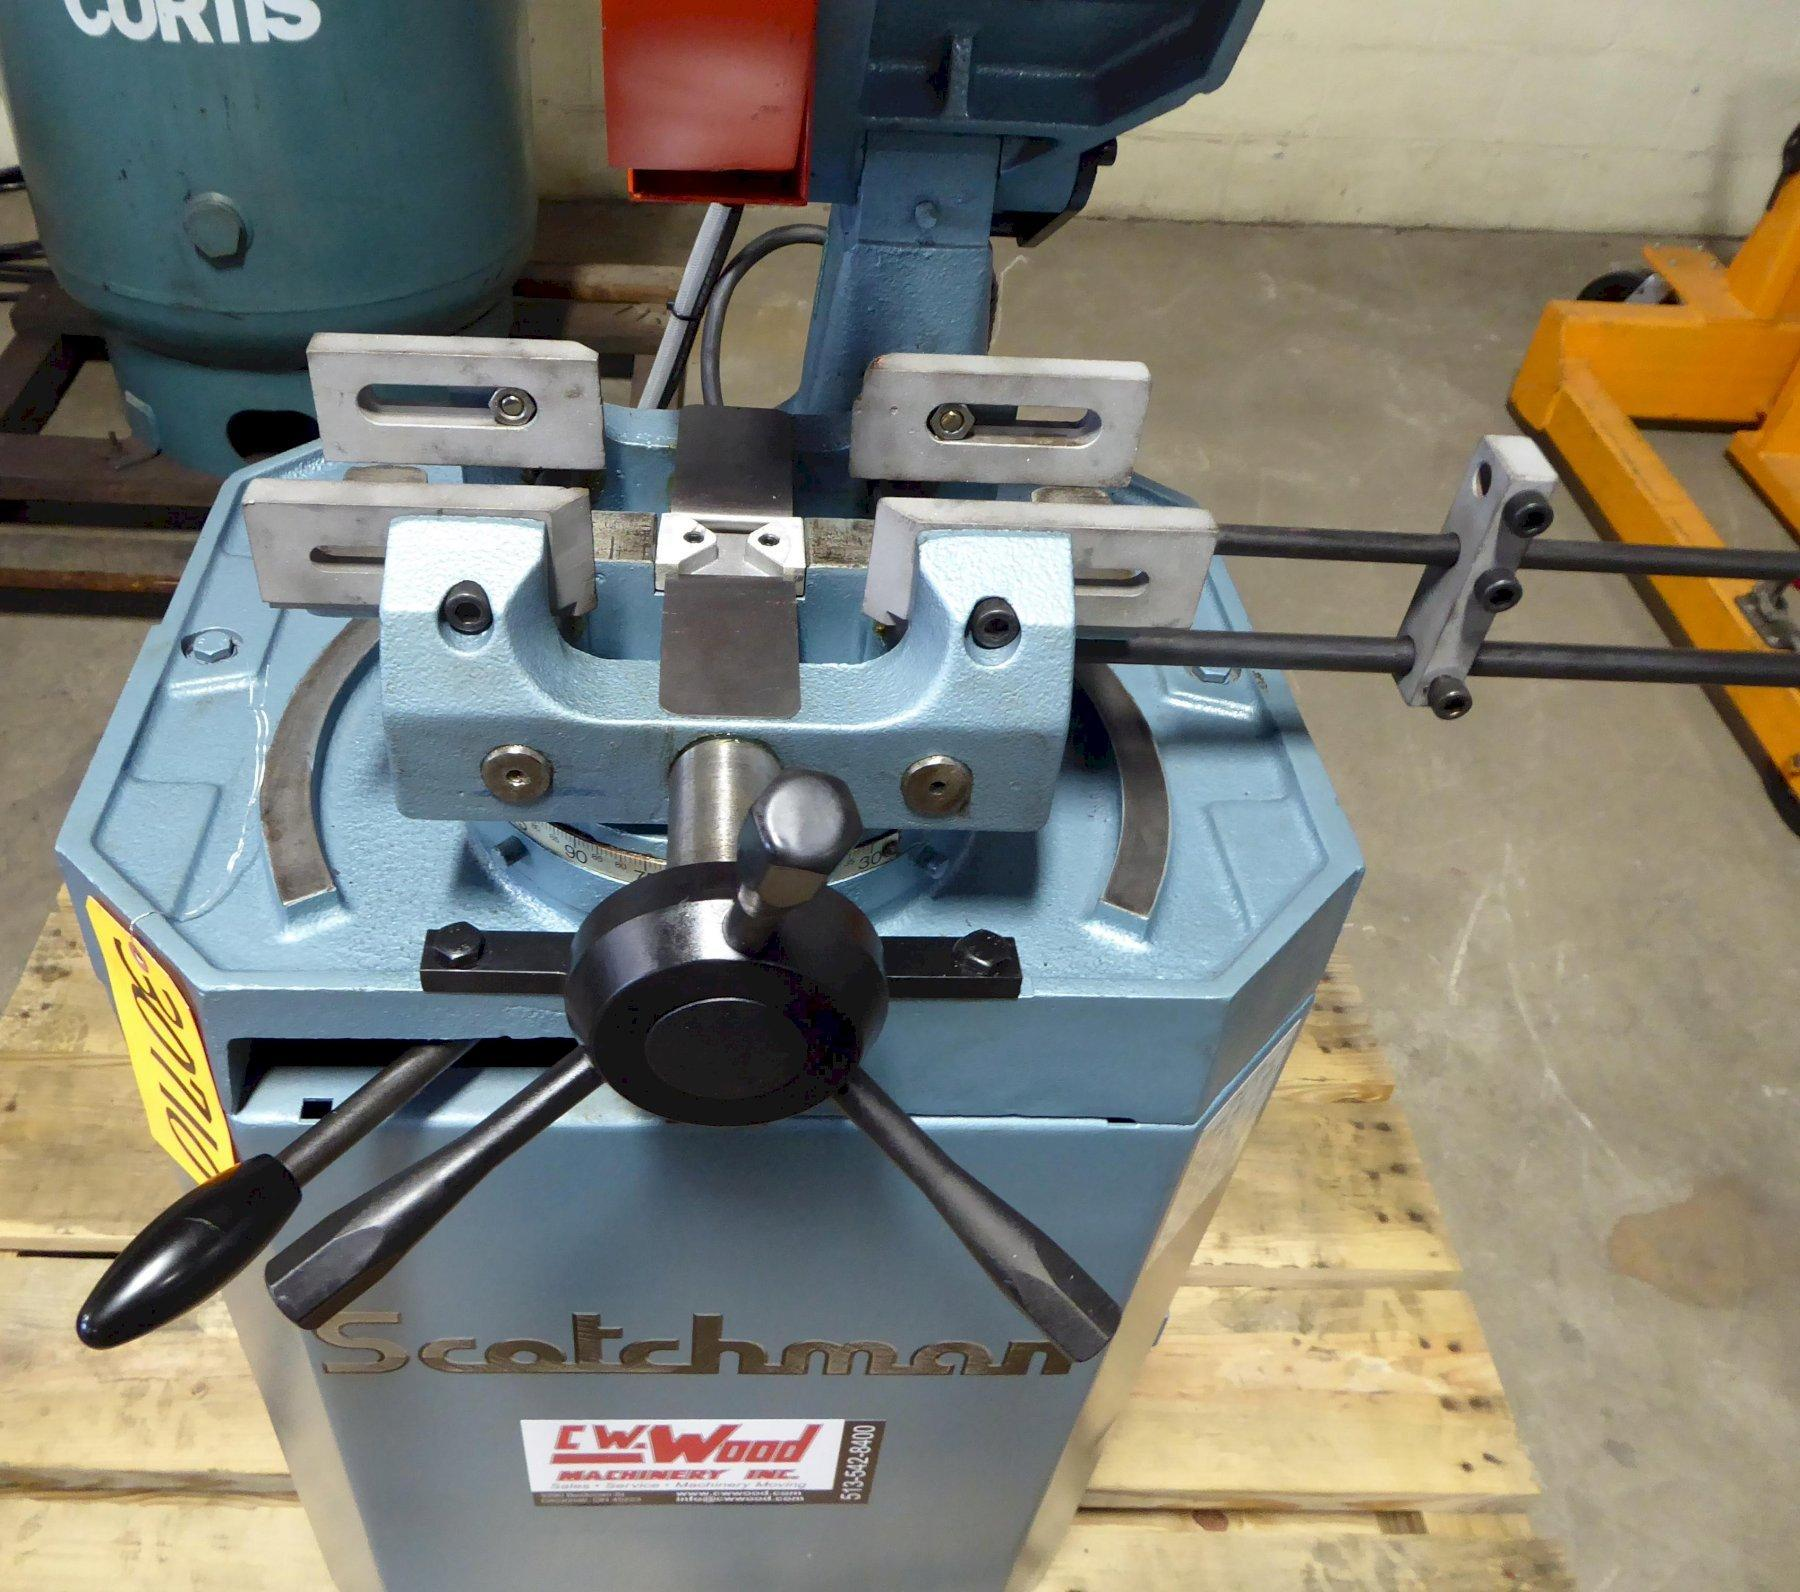 """10"""" Scotchman Cold Saw, Model CPO 275 LT, Miter, 1-1/2"""" Solids, 3-3/8"""" Round Tubing, 2 HP, Reconditioned 2020"""